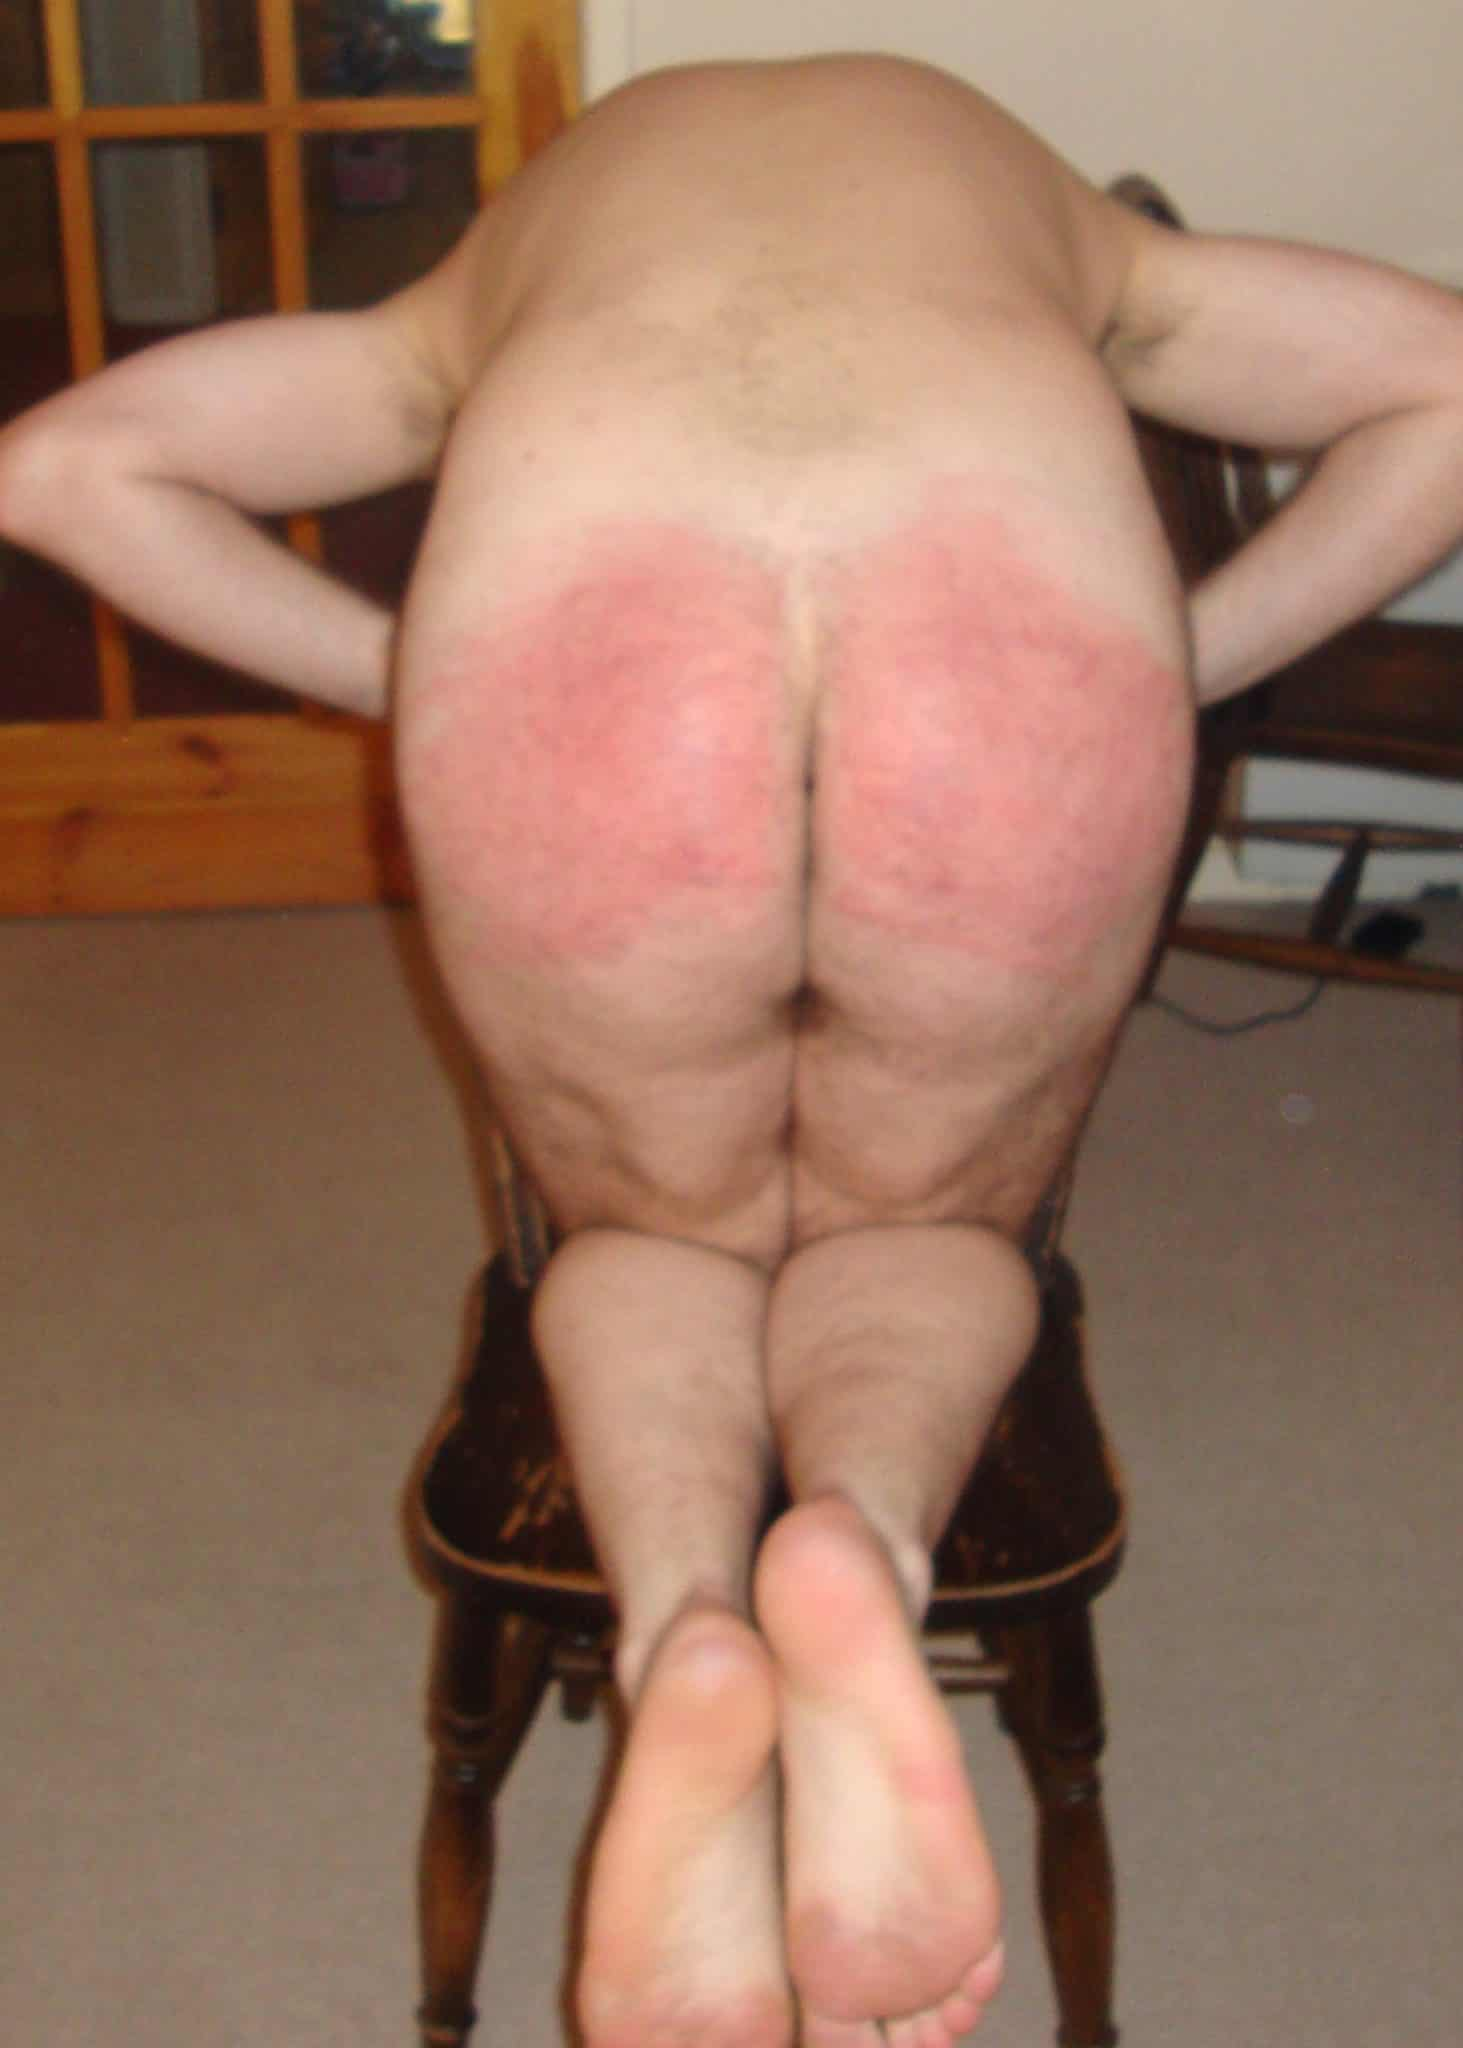 spanking cams, live over the knee spanking, spanking pictures, spanking stories, spanking blog